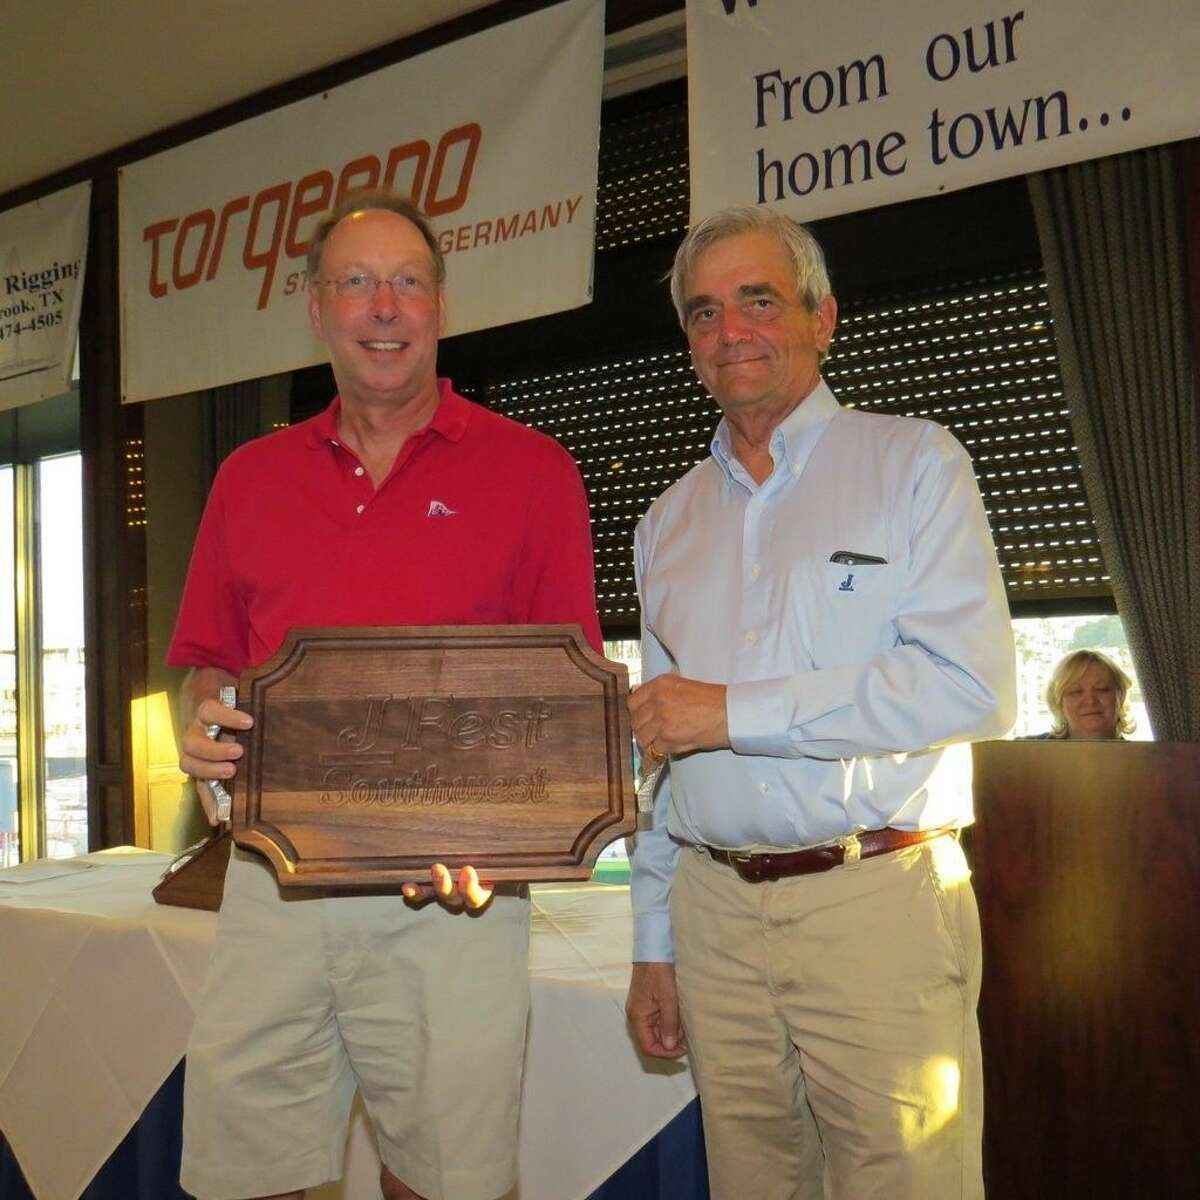 Lakewood Yacht Club racer Al Goethe, chairman of the 5th Annual J/Fest Southwest Regatta, earned the first place trophy in the J/109 fleet on